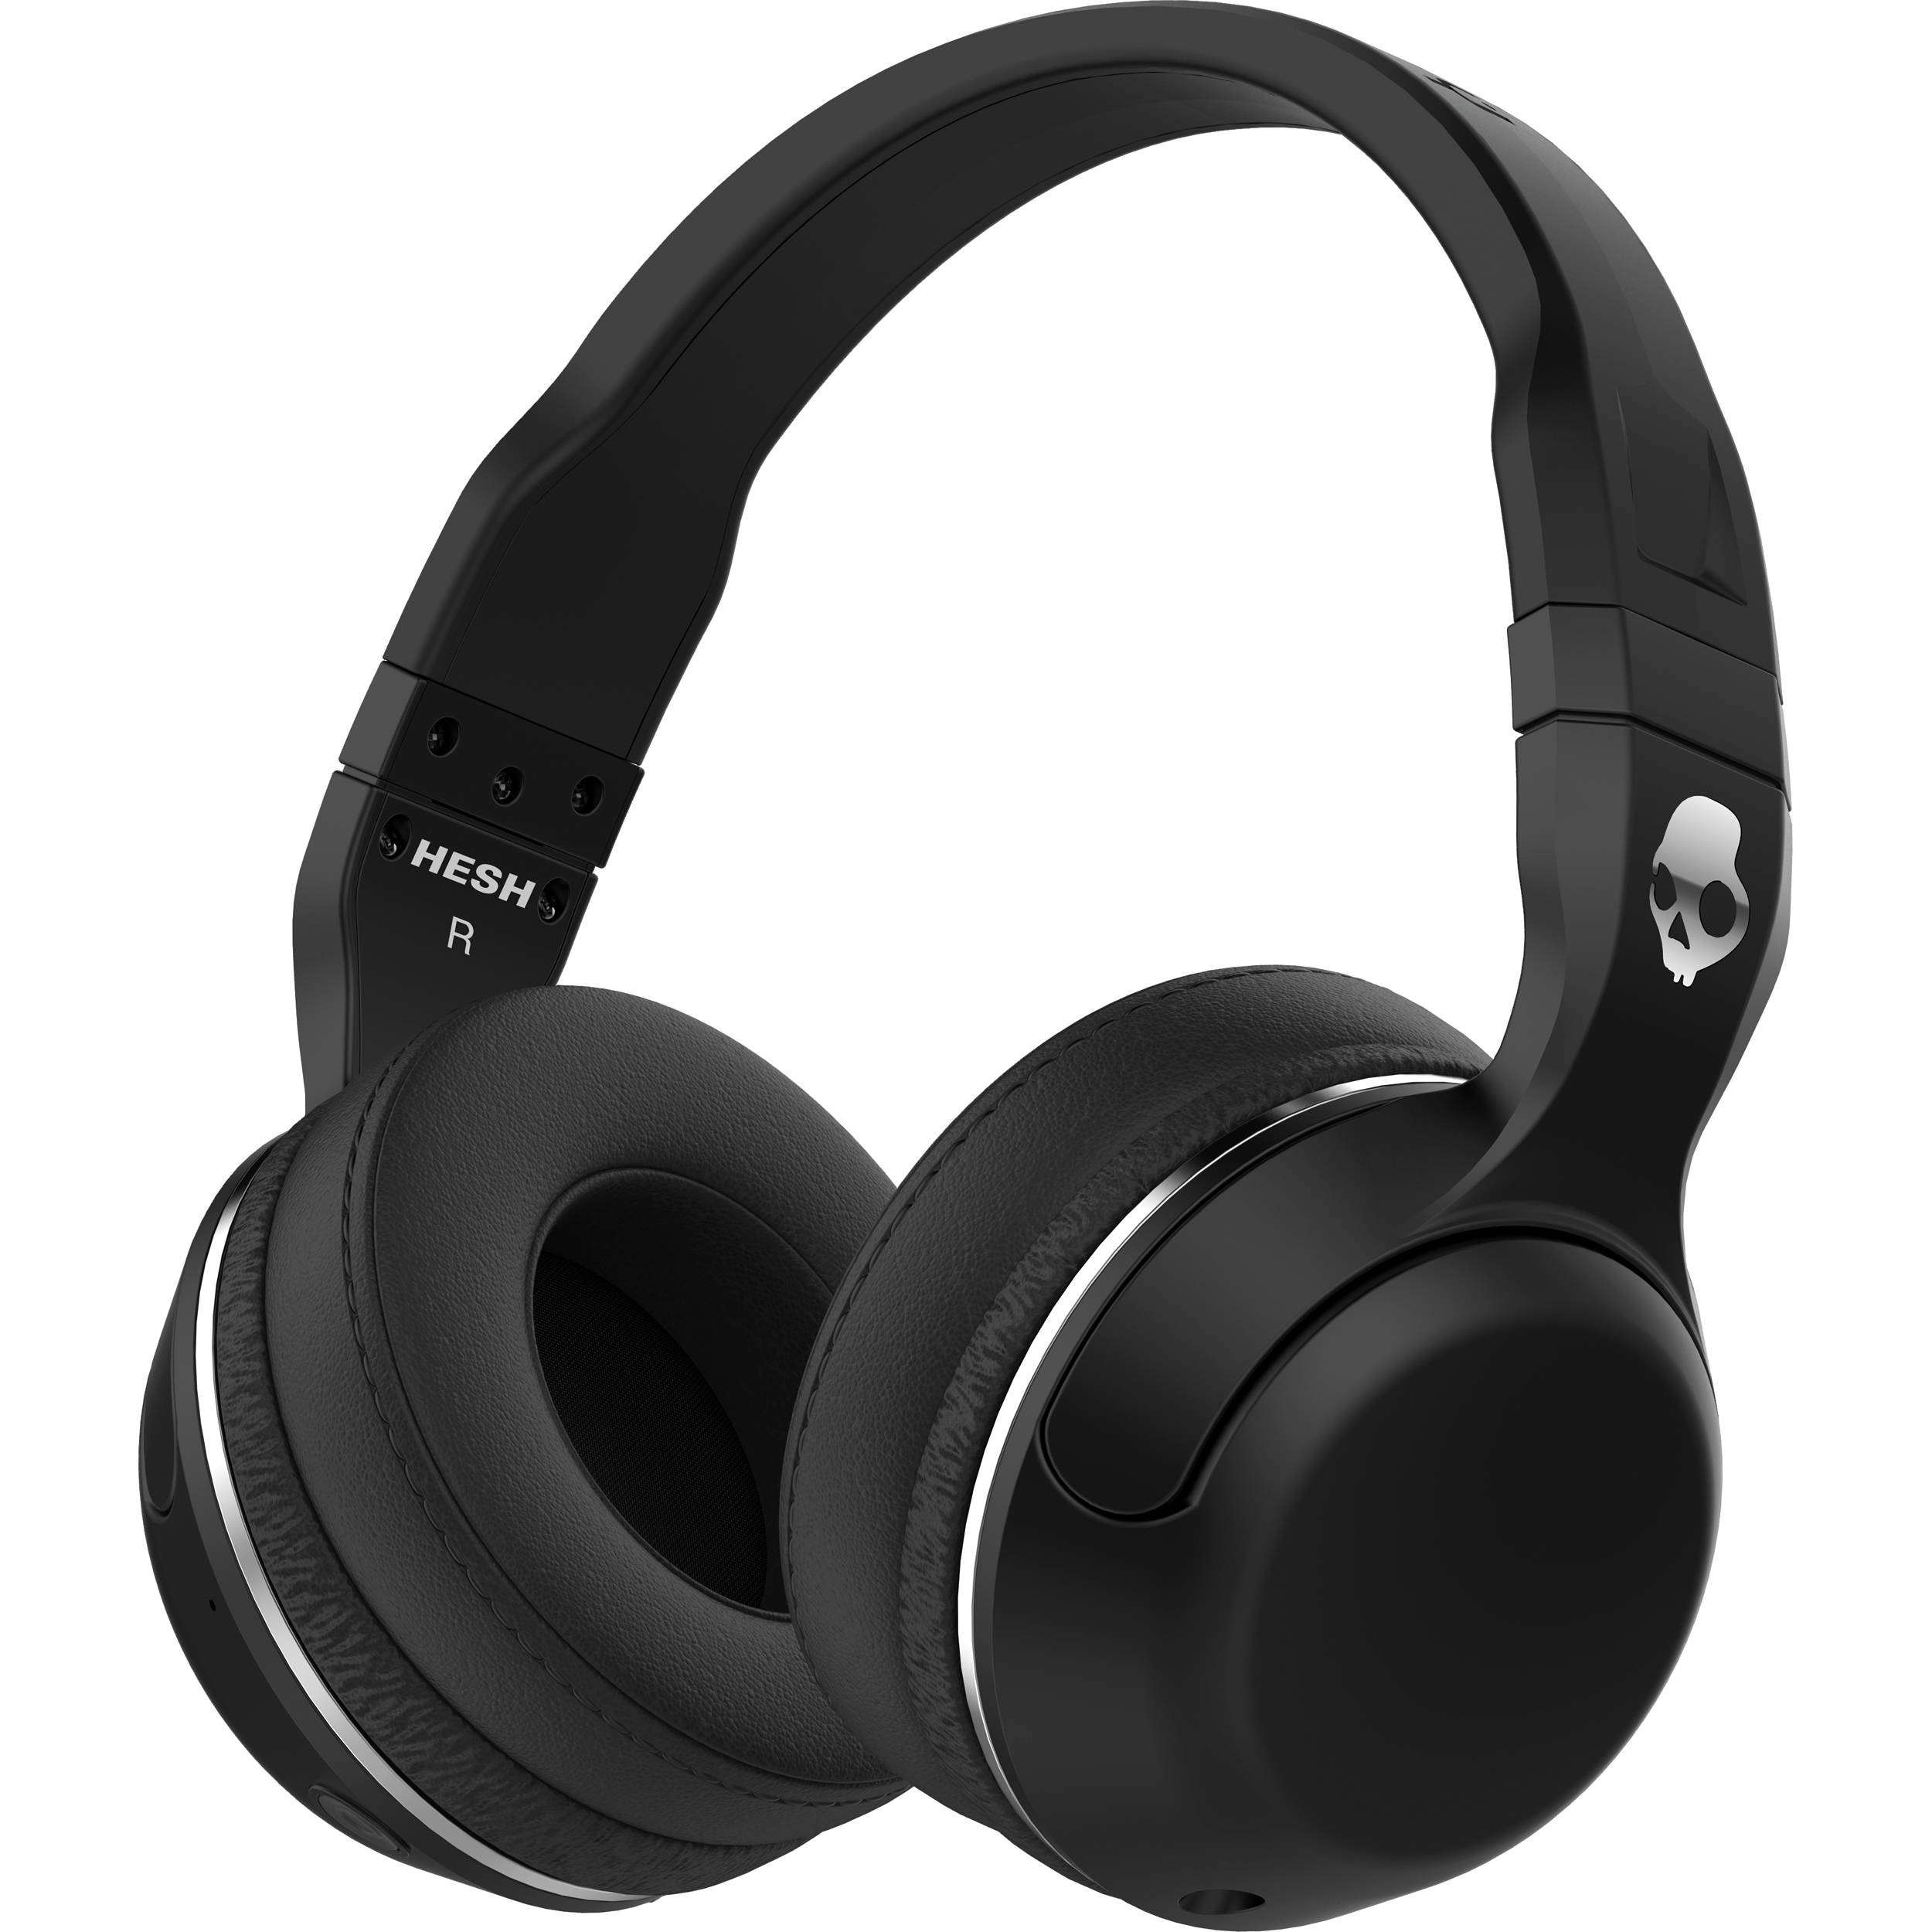 Skullcandy Hesh 2 Wireless Bluetooth Headphones S6hbgy 374 Bh Headphone Wire Diagram Additionally Iphone Charger Cable Cord As Well Black